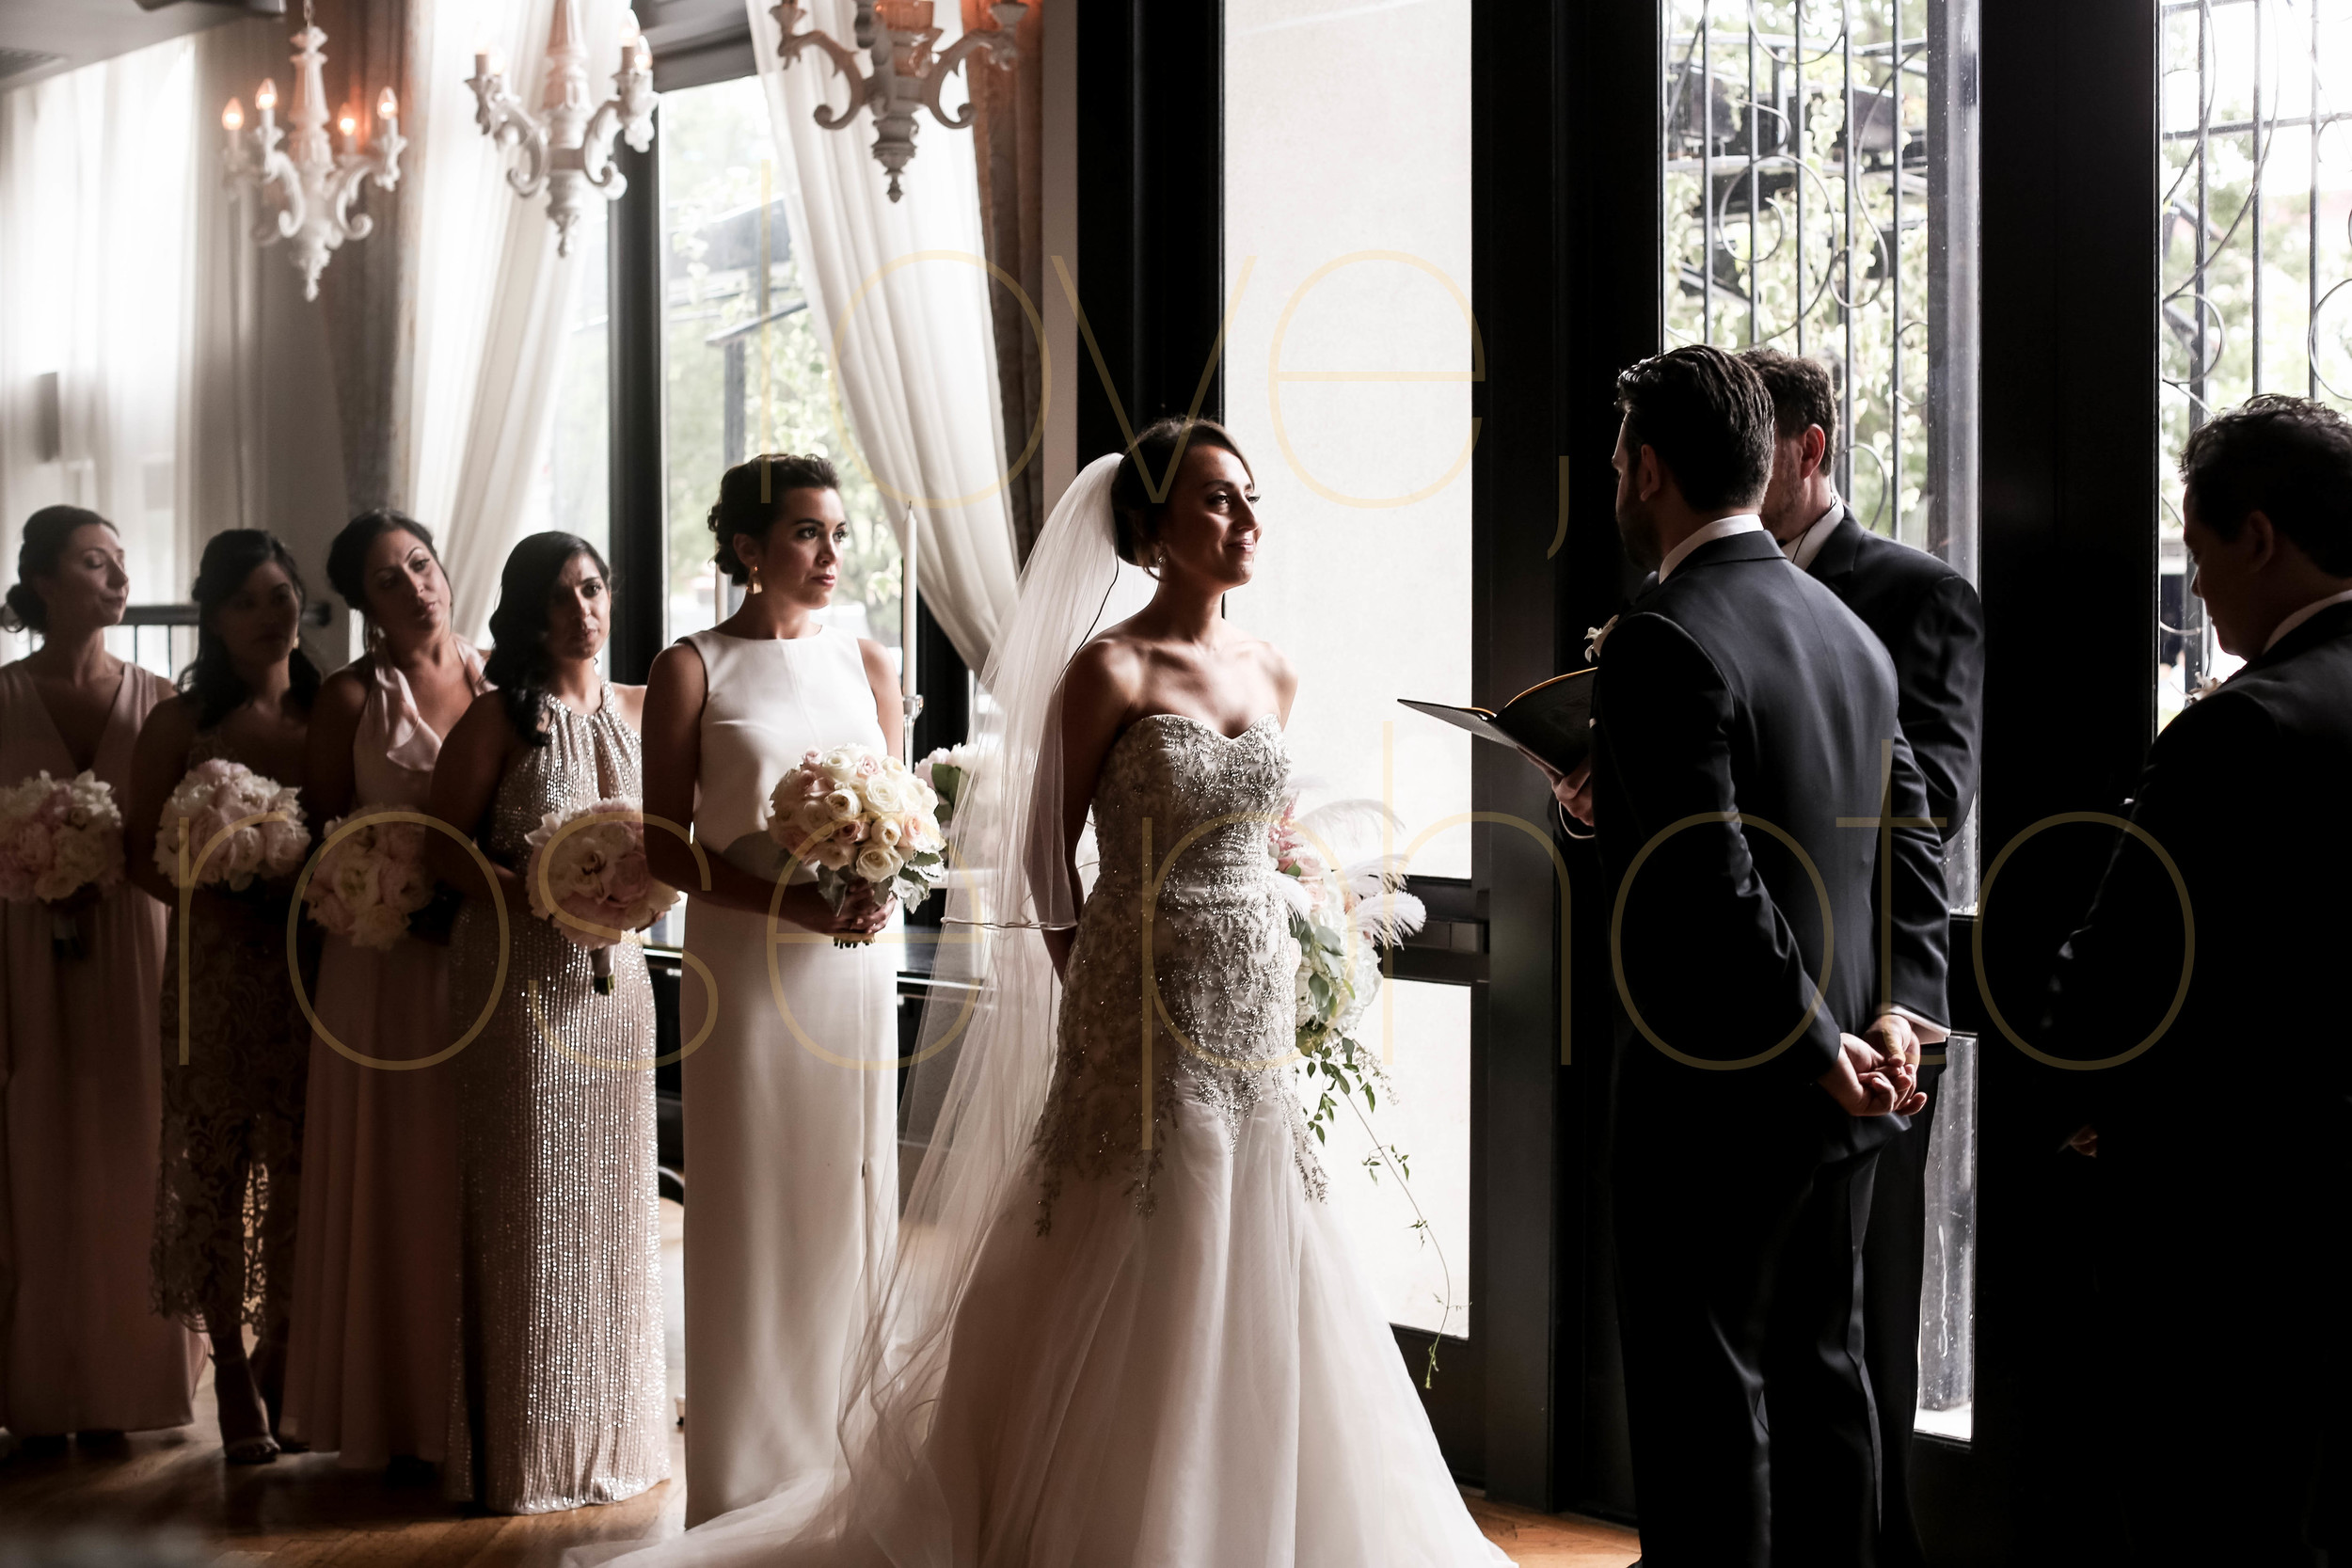 ornella + medhi gold coast west loop chicago wedding 3 arts club nelcotte rm champagne summer modern luxury wedding-32.jpg